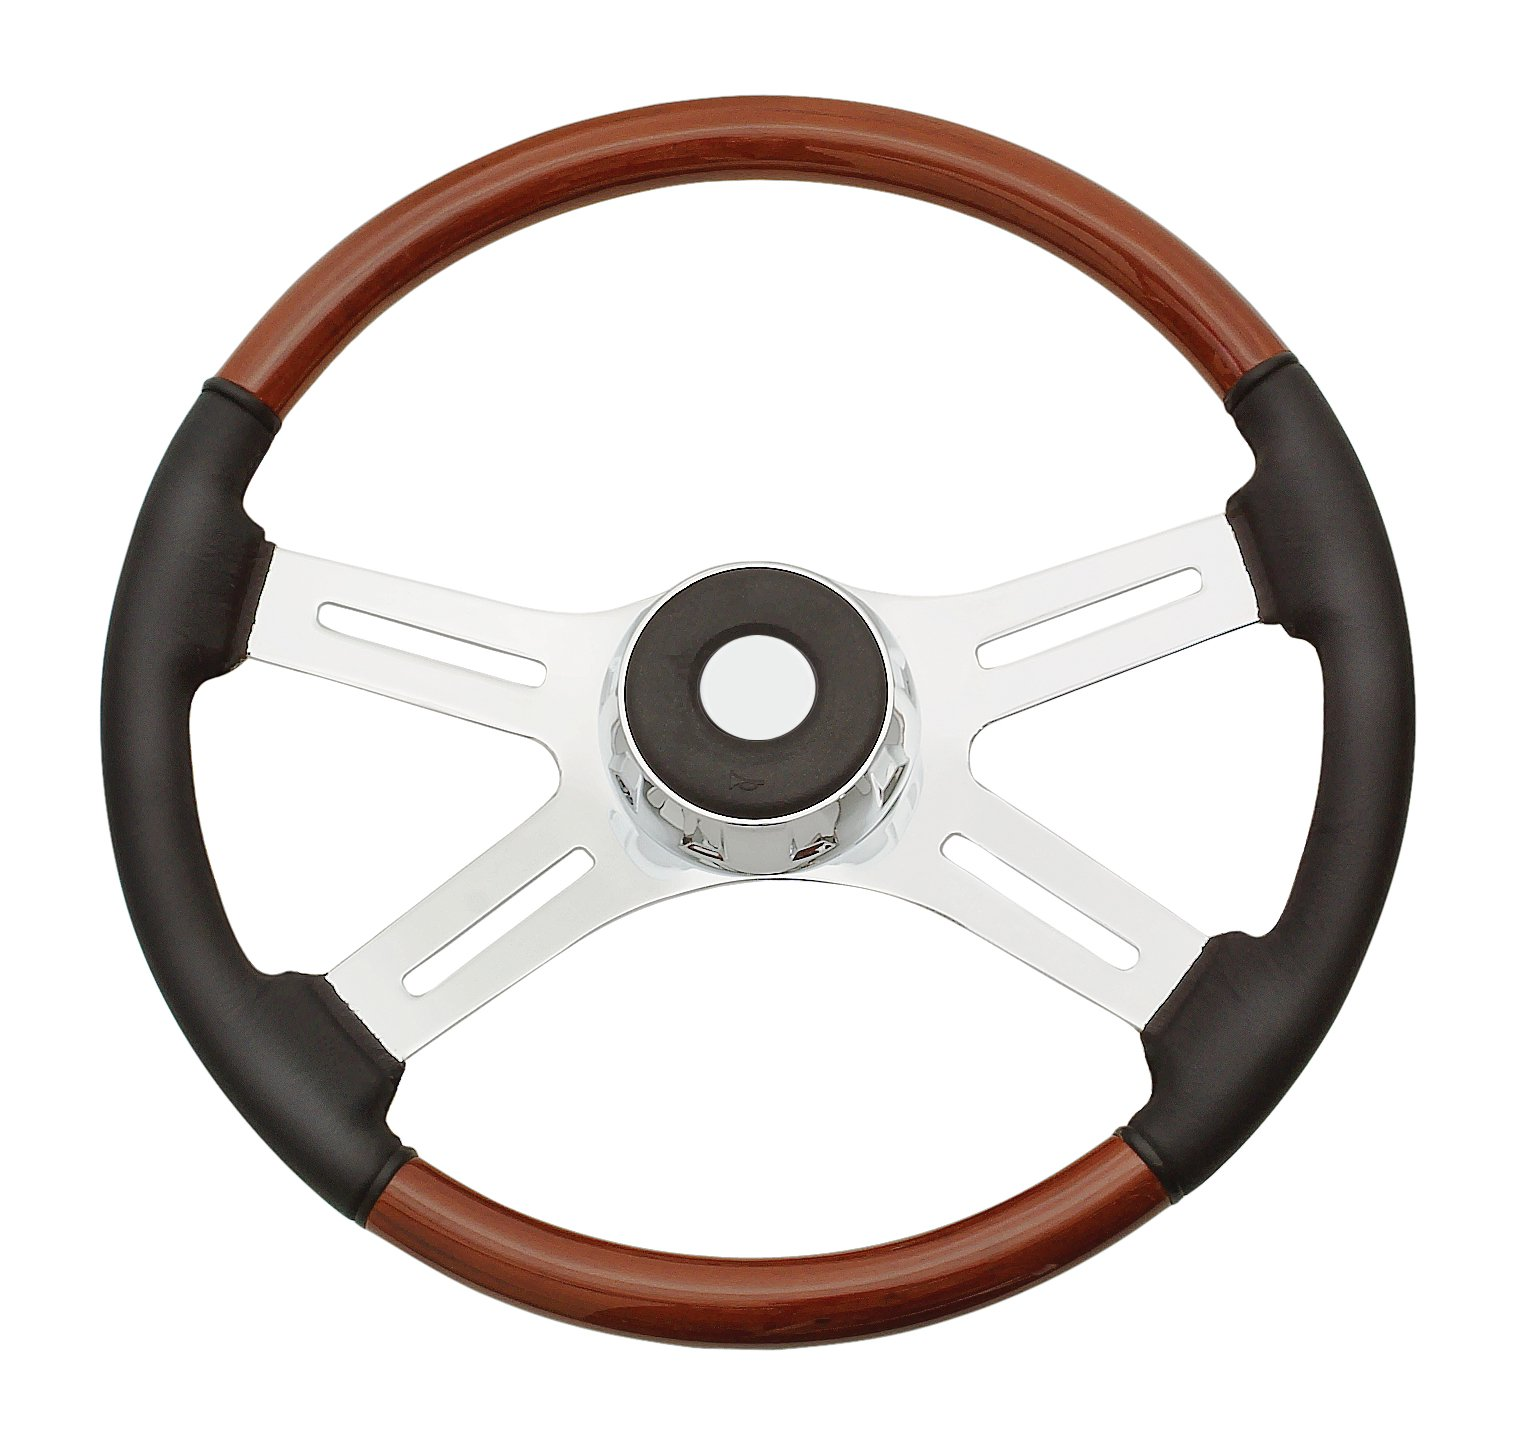 Woody's WP-SWPBL Rosewood Chrome Truck Steering Wheel (Beautiful African Hardwood) by Woody's